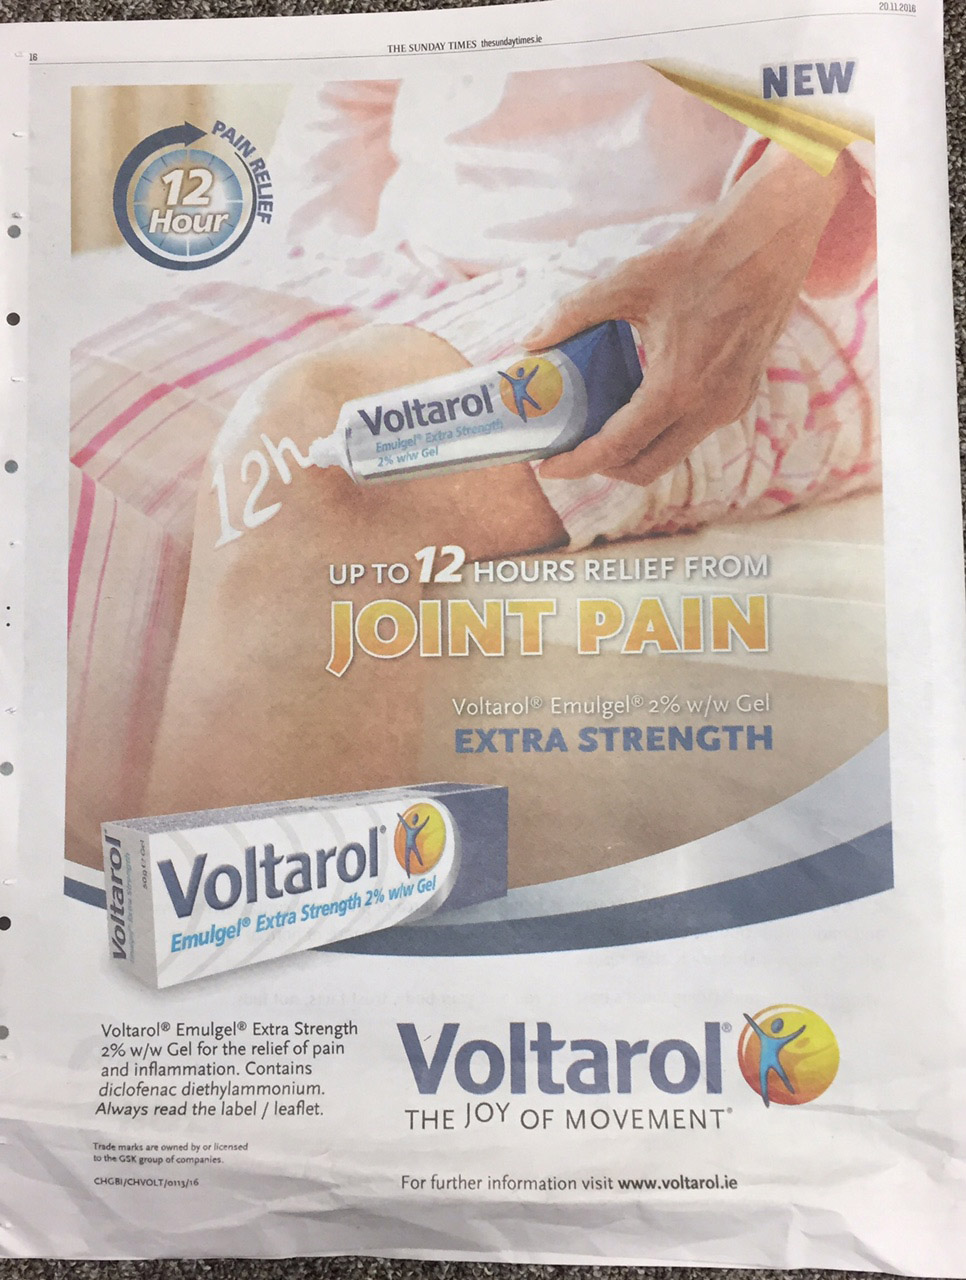 Voltarol – up to 12 hours relief from joint pain